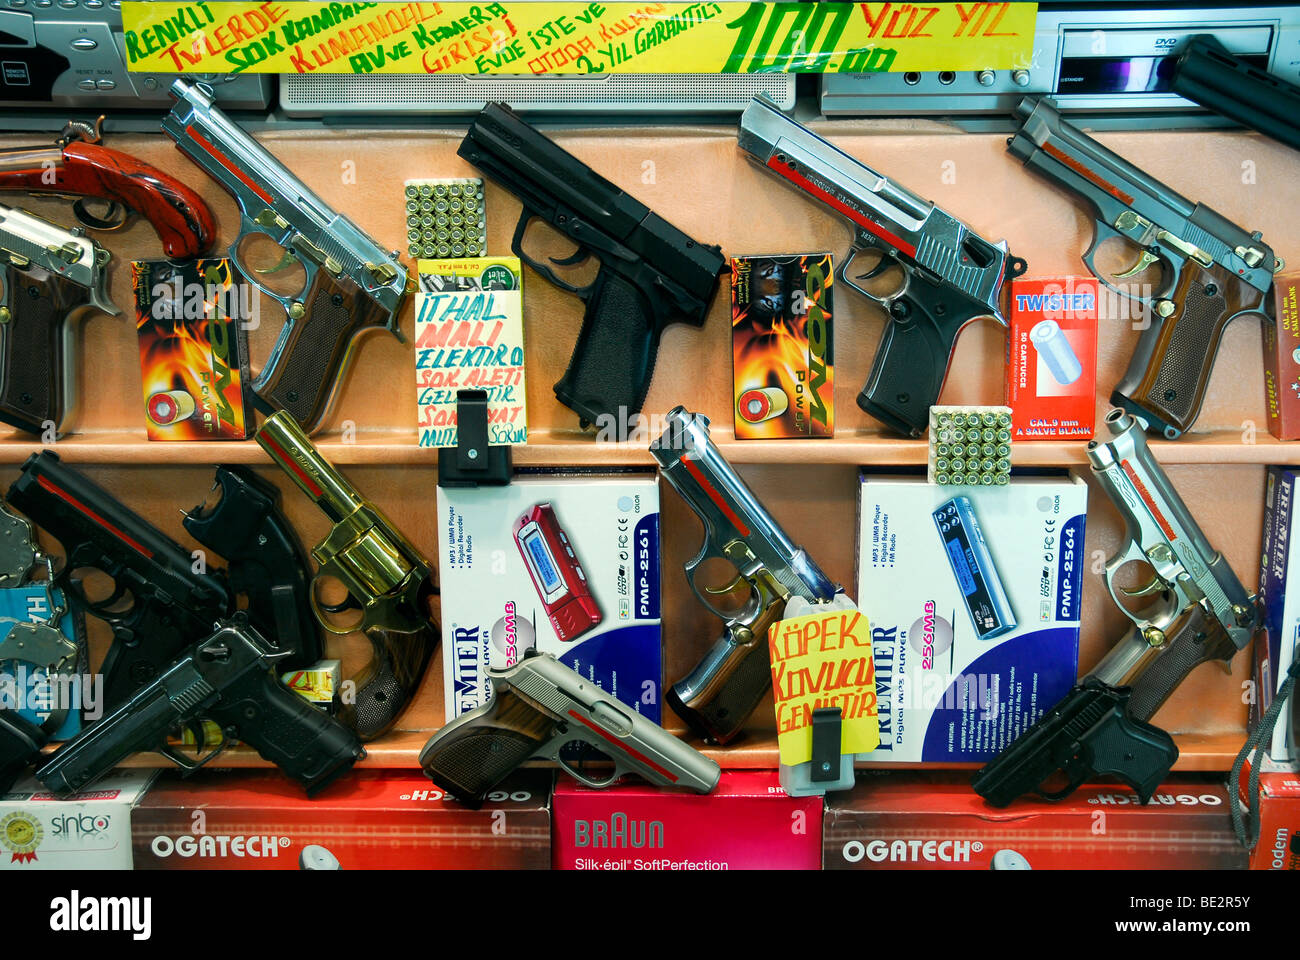 Showcase of firearms, Beyoglu district, Istanbul, Turkey - Stock Image